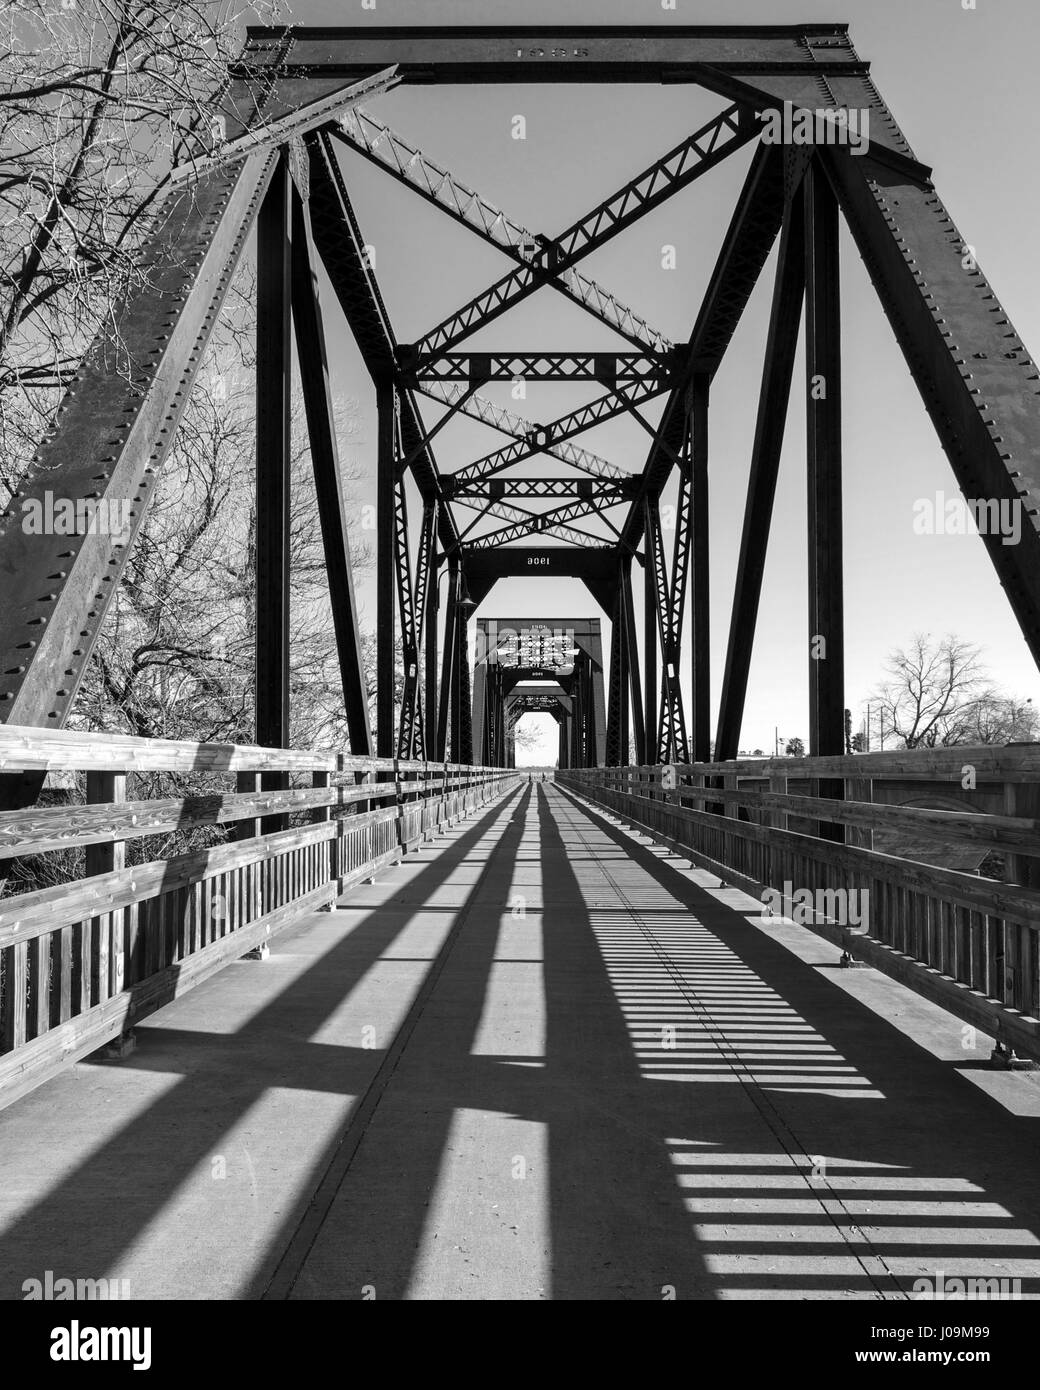 Whide angle view of the city of Winters famous Historic Trestle Train Bridge in black and white, California, USA Stock Photo